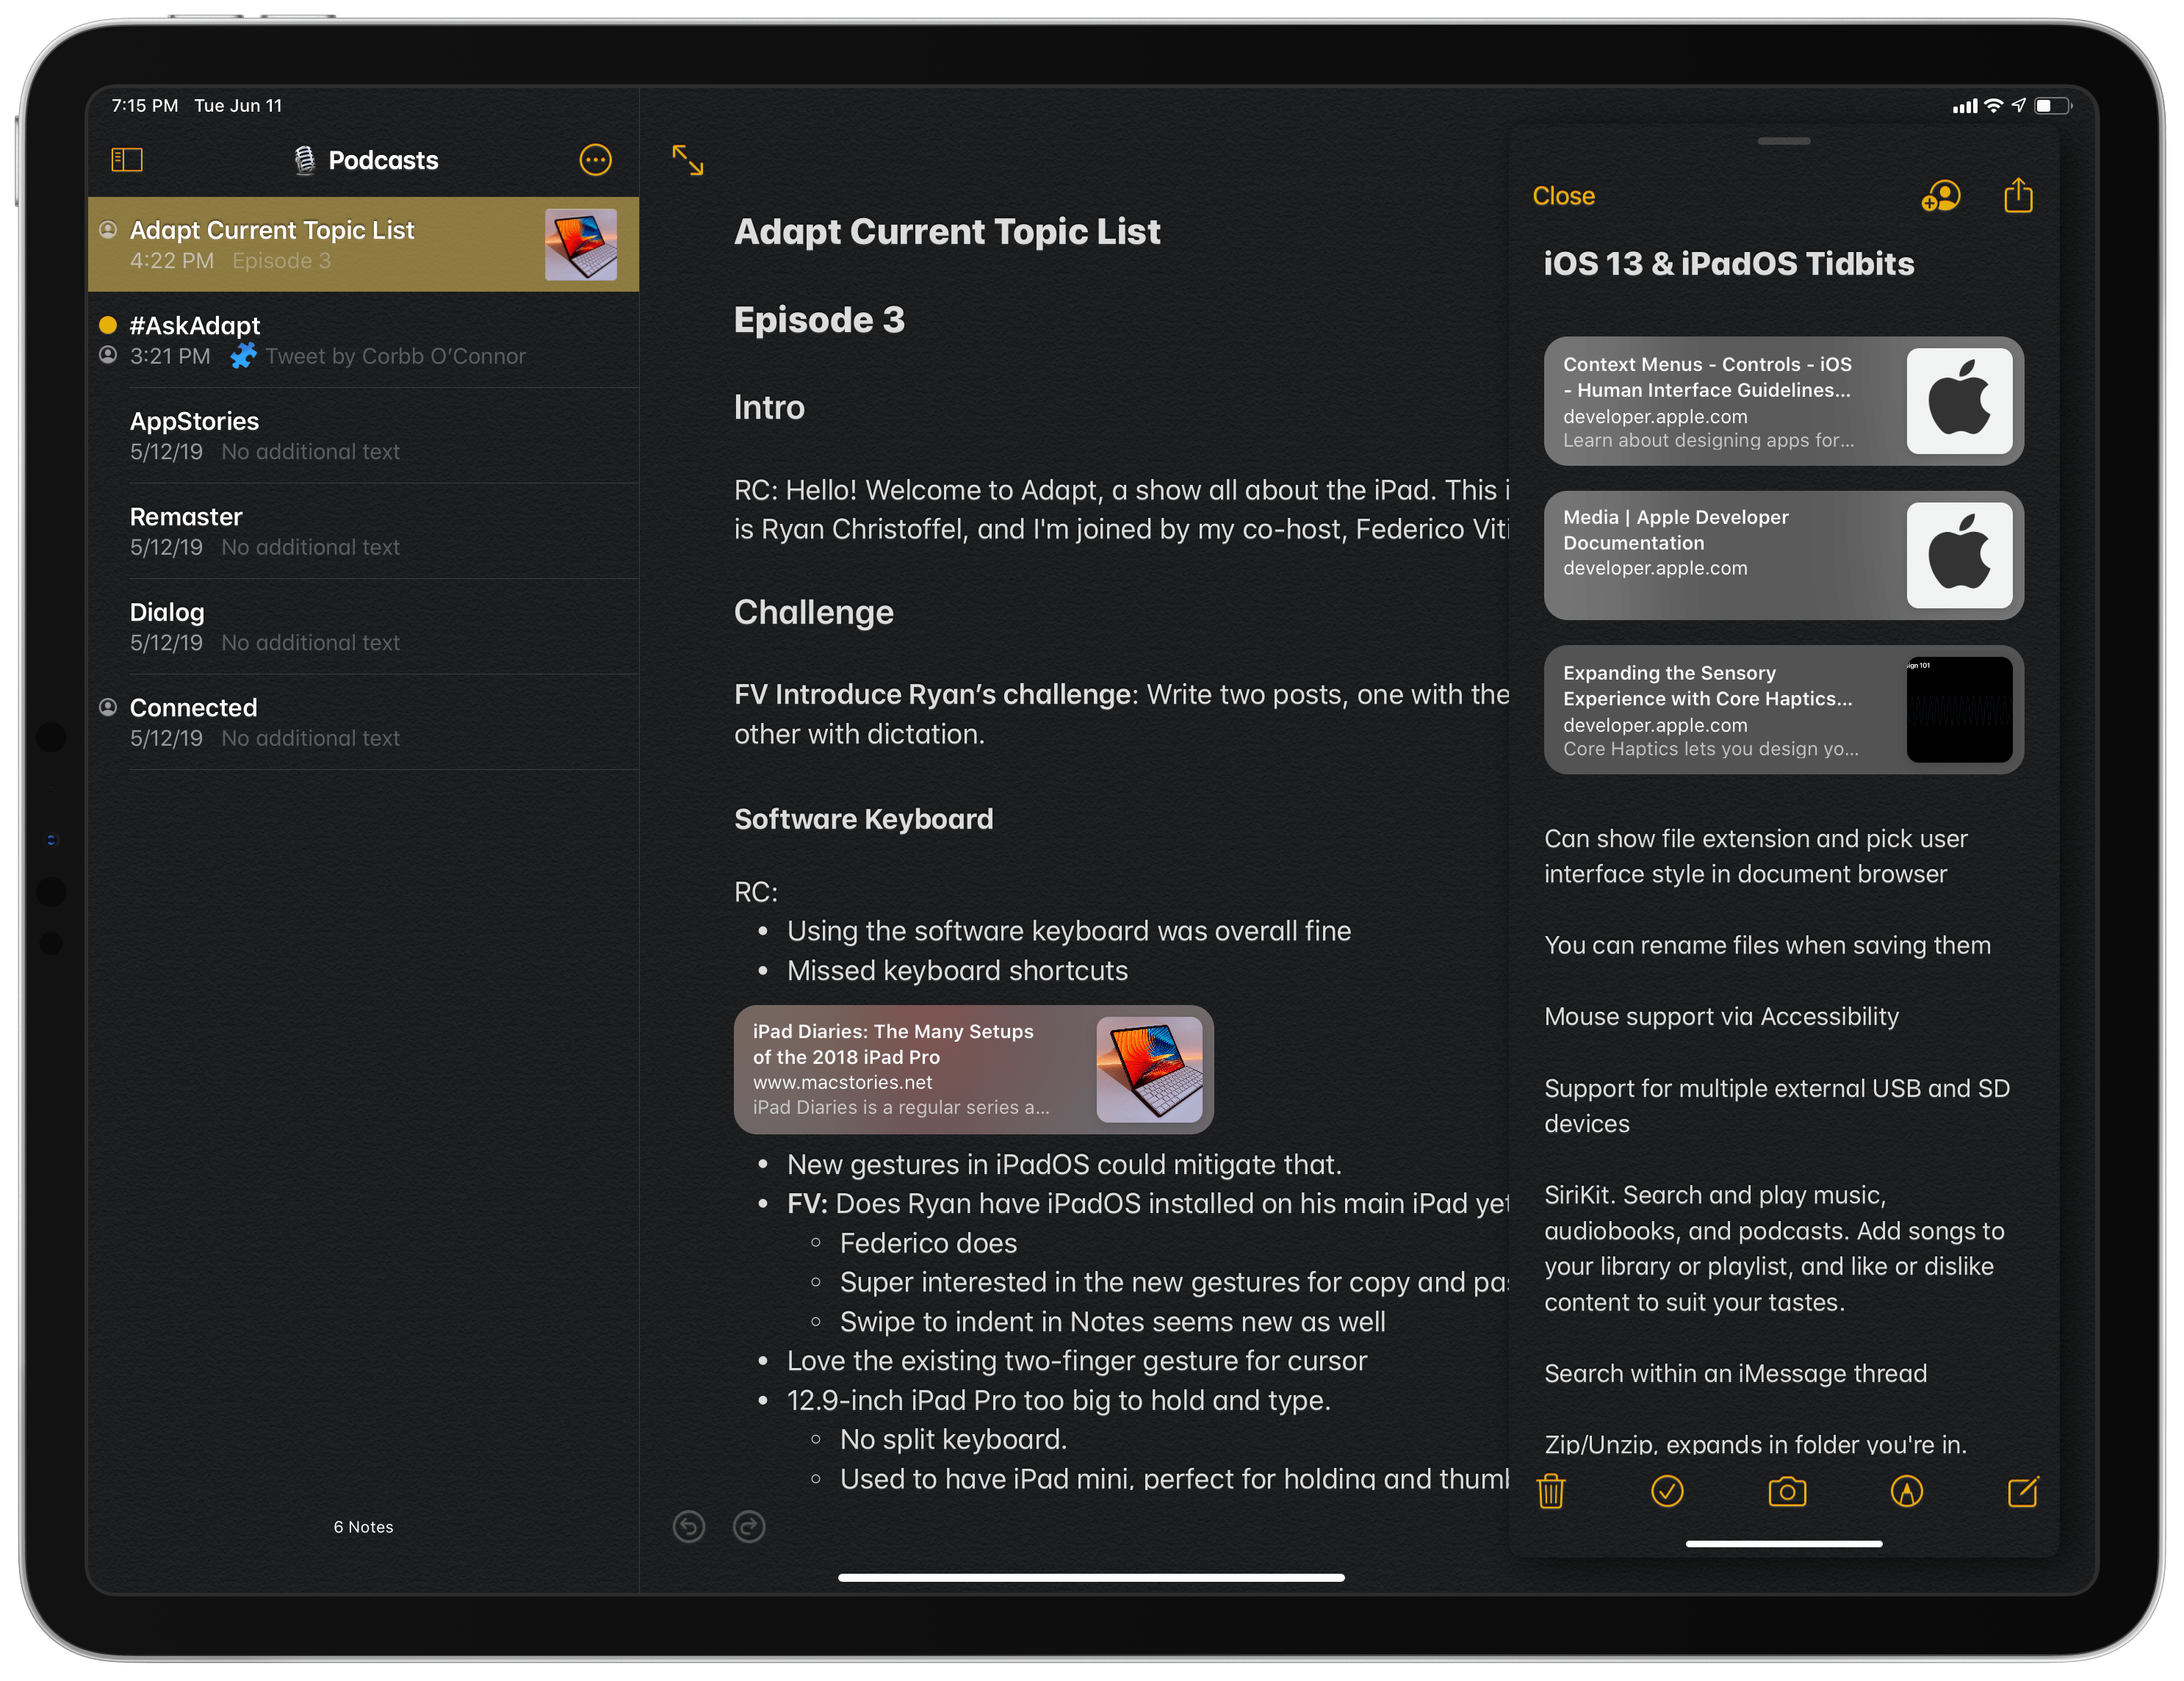 Two windows from Notes – one in full-screen, the other in Slide Over with dark mode enabled.